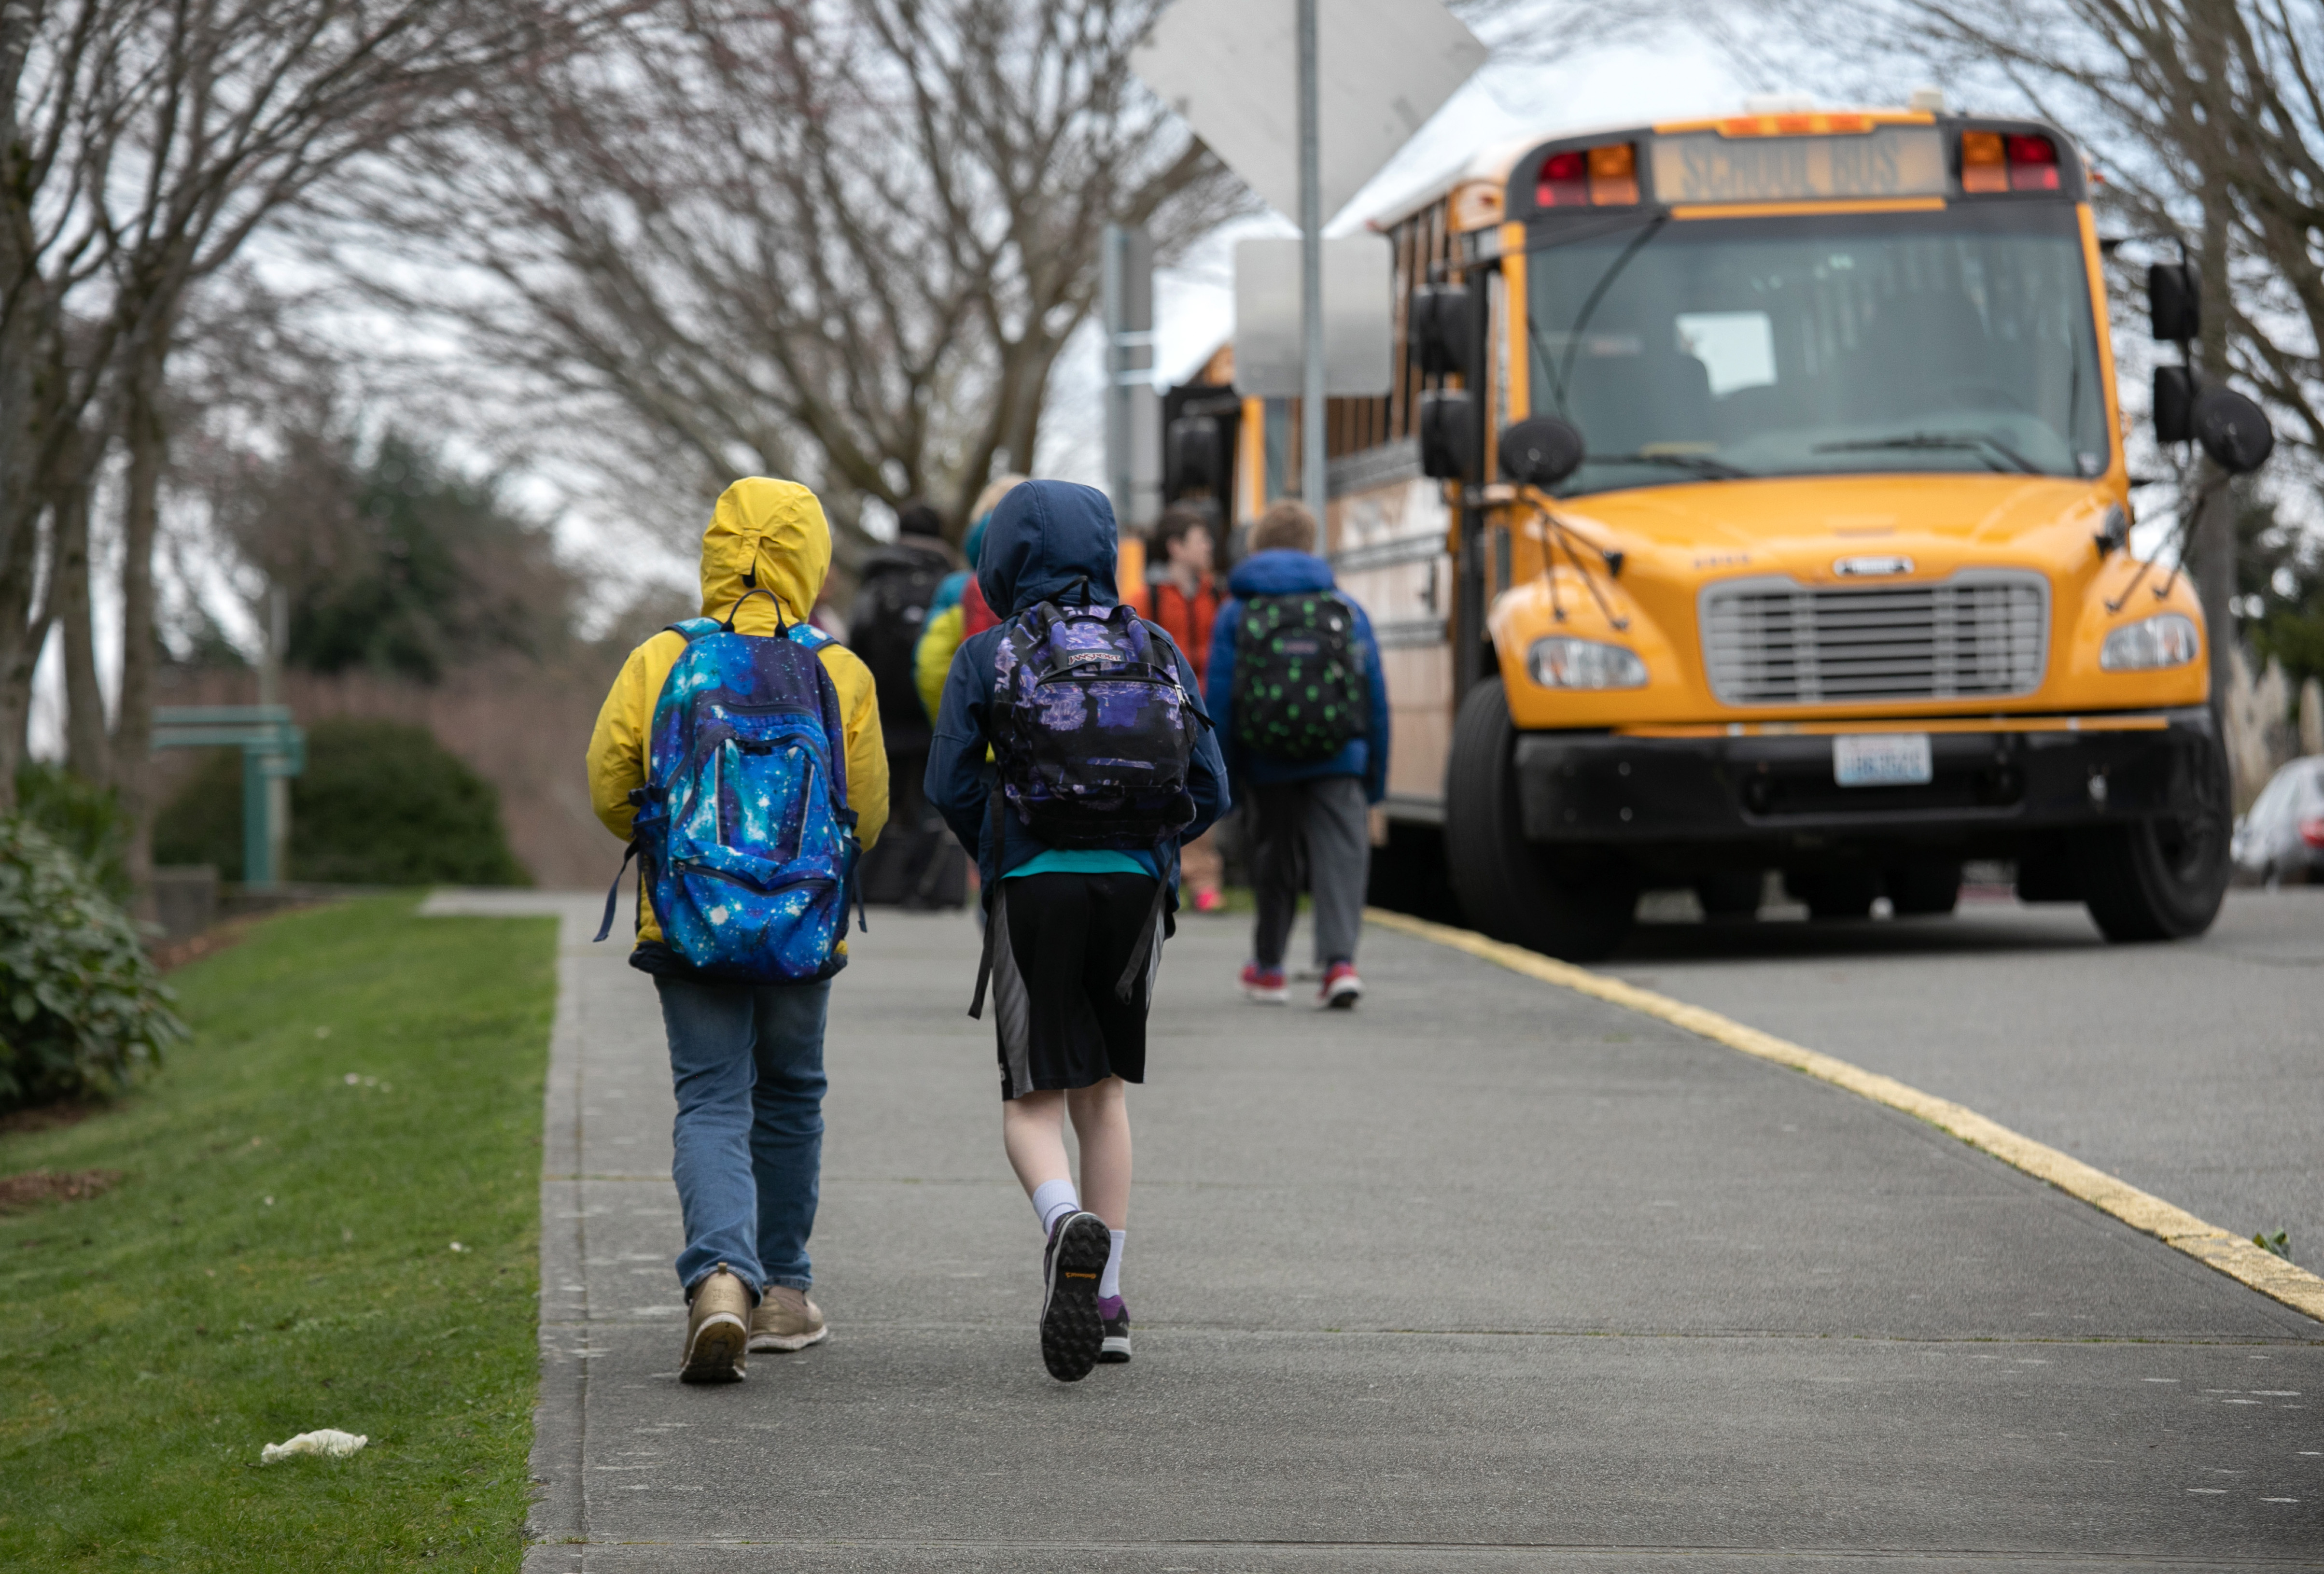 Students leave an elementary school in Seattle, Washington, after the Seattle Public School system closed due to coronavirus concerns on March 11, 2020.